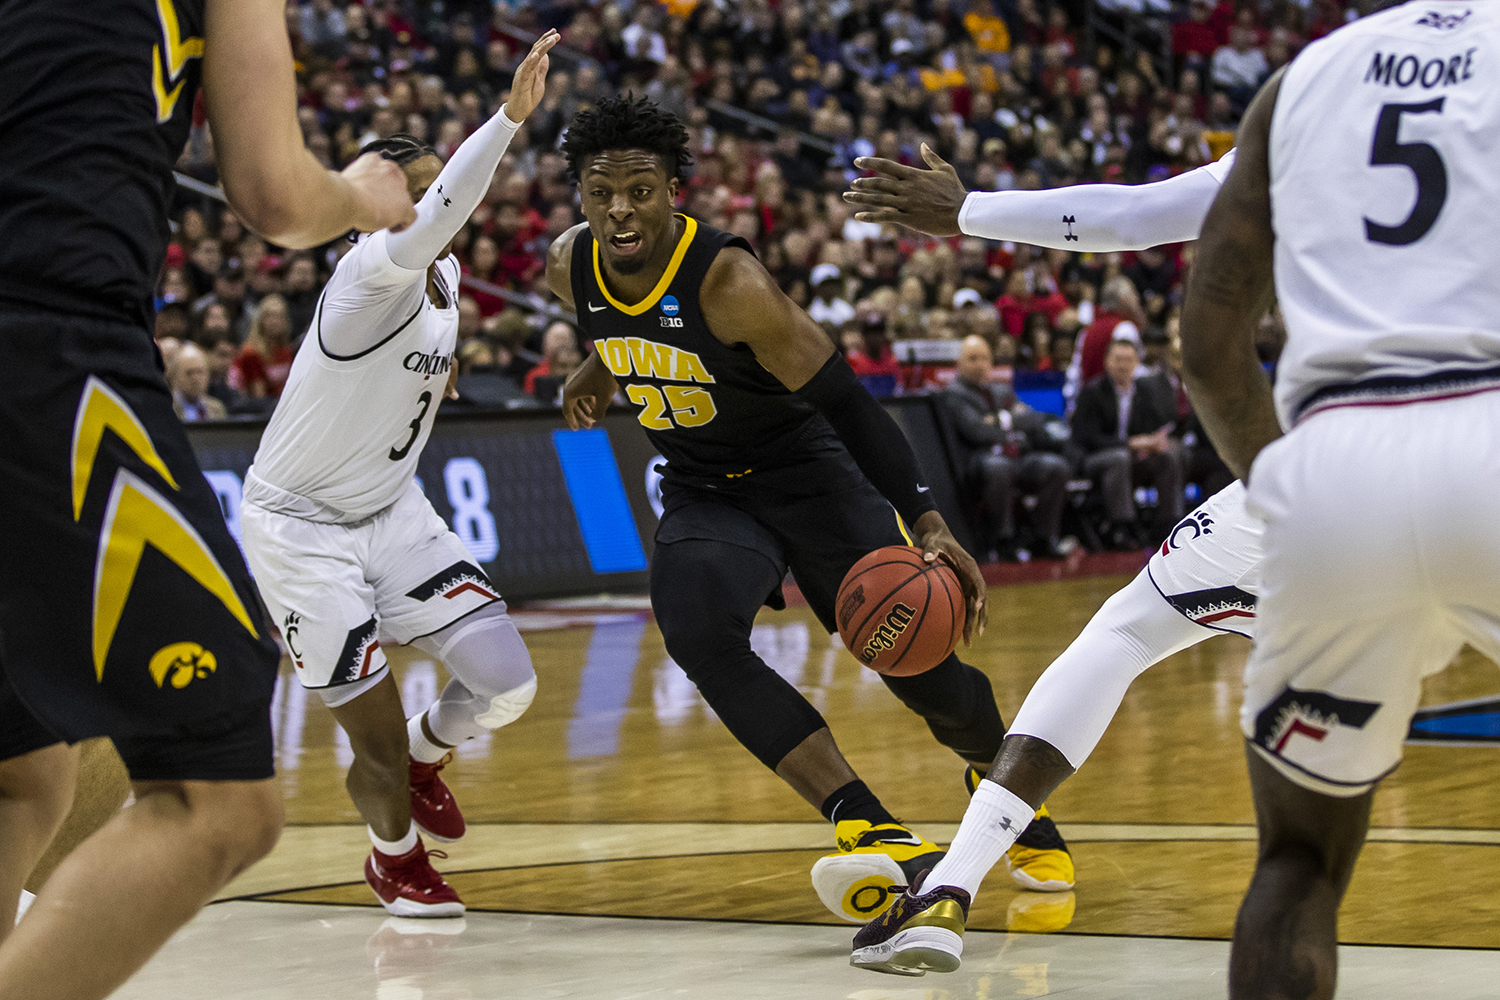 Iowa forward Tyler Cook drives the ball during the NCAA game against Cincinnati at Nationwide Arena on Friday, March 22, 2019. The Hawkeyes defeated the Bearcats 79-72.